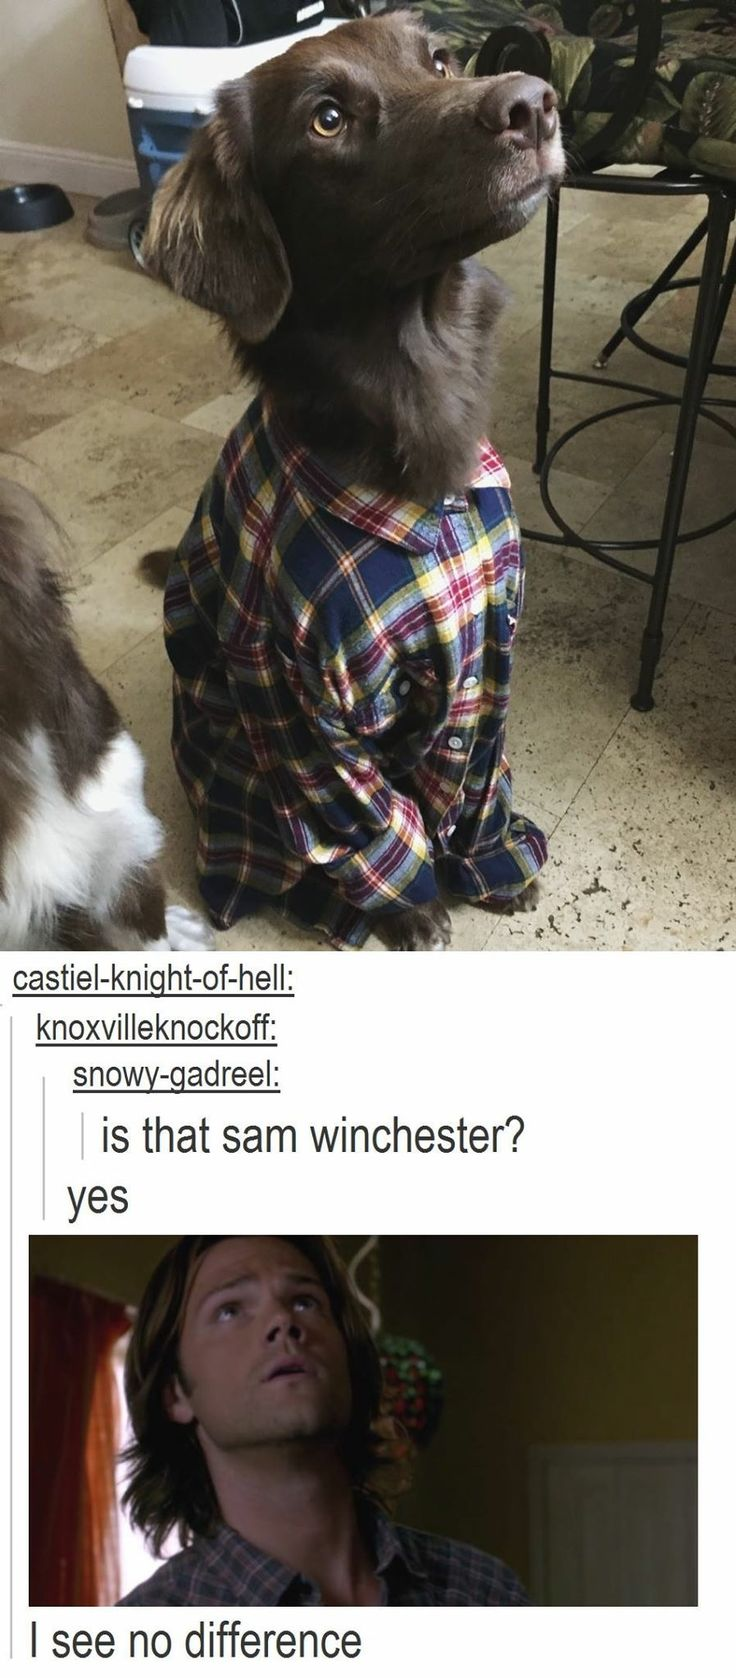 Puppy in flannel = Sam Winchester